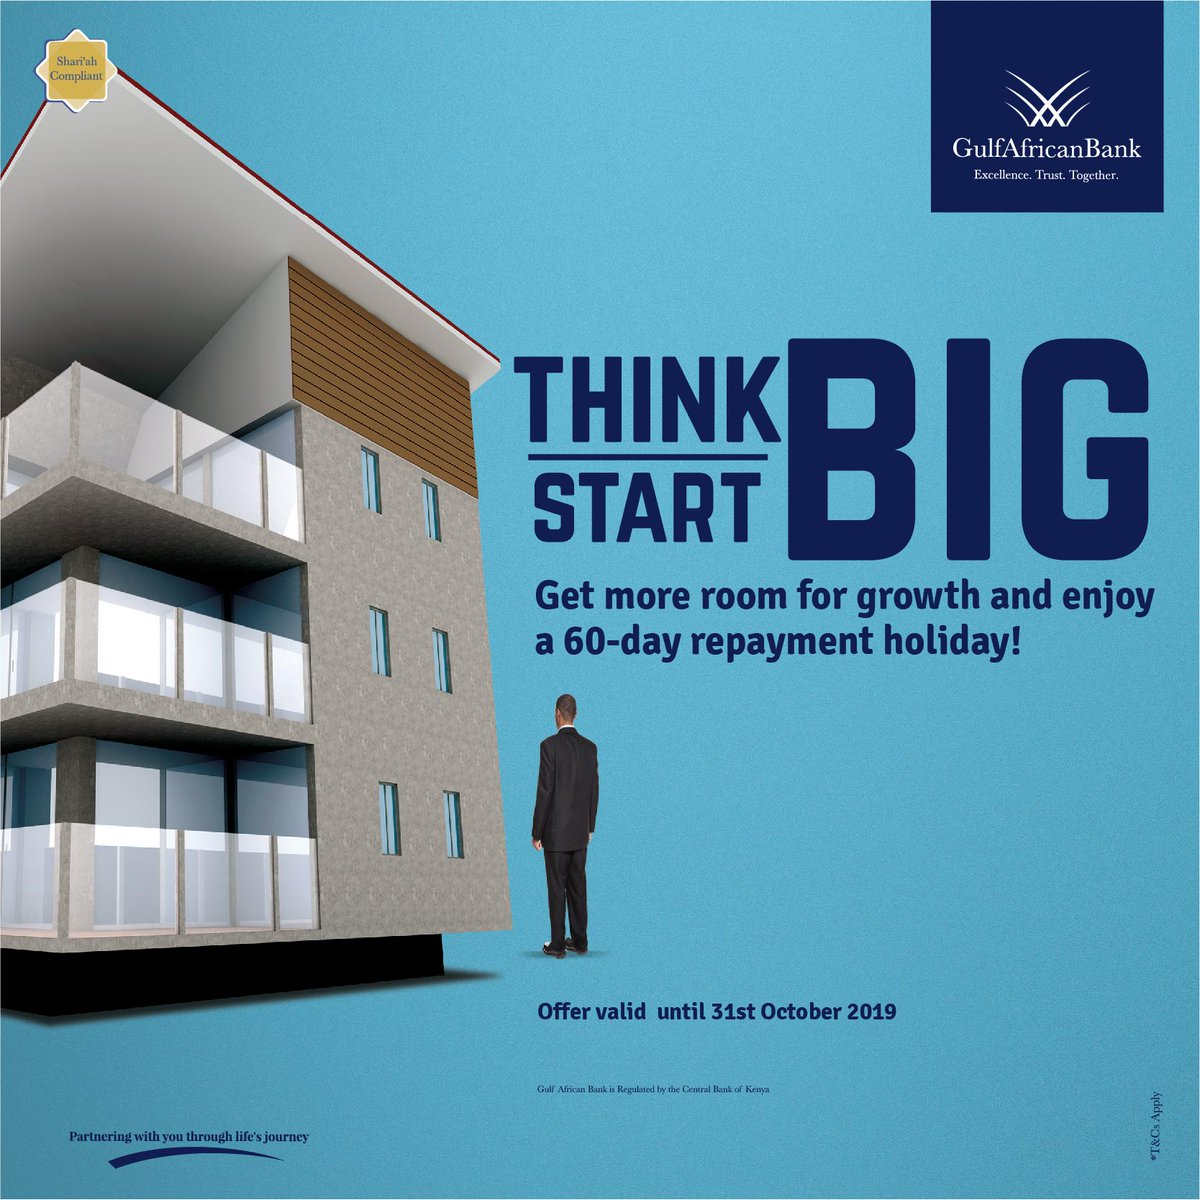 With our mortgage plan, you can grow your business to your vision with reduced financing rates, get an enhancement of your facility limits and enjoy financing up to 84%!  SMS 'ThinkBigStartBig' to 21981 https://t.co/KXOWKcTZIH